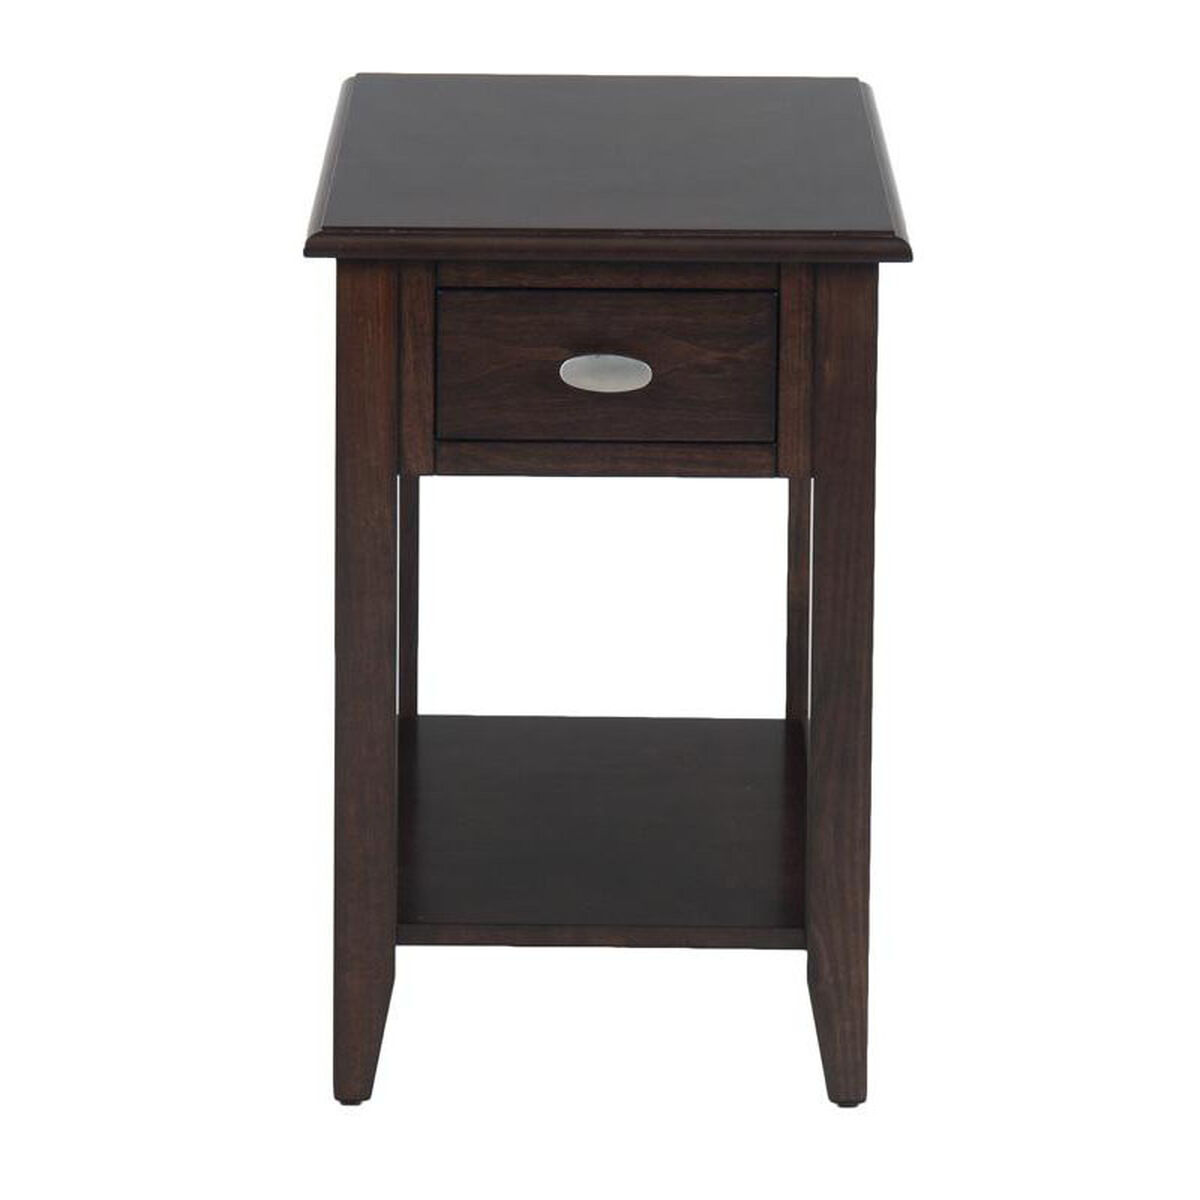 small chairside table. Our Merlot Chairside Table For Small Spaces Is On Sale Now. N